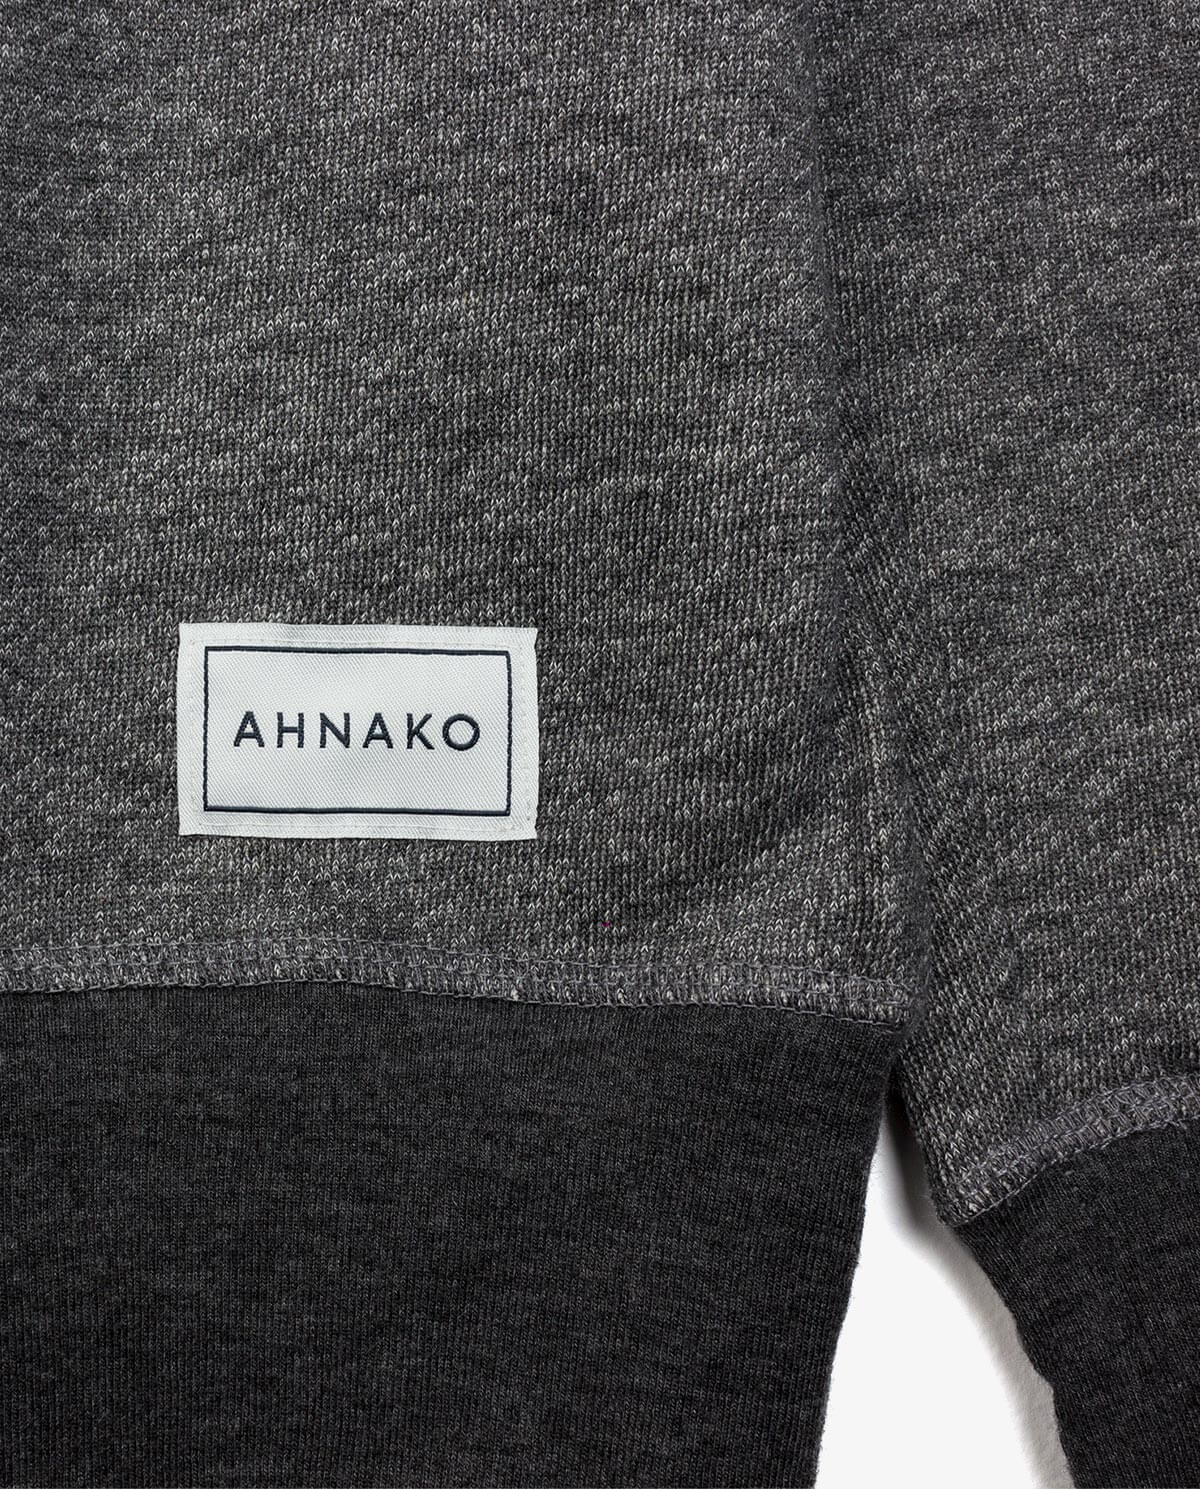 Ahnako Women's French Terry Boat Neck Sweater with Logo Patch - Grey - Patch Close Up